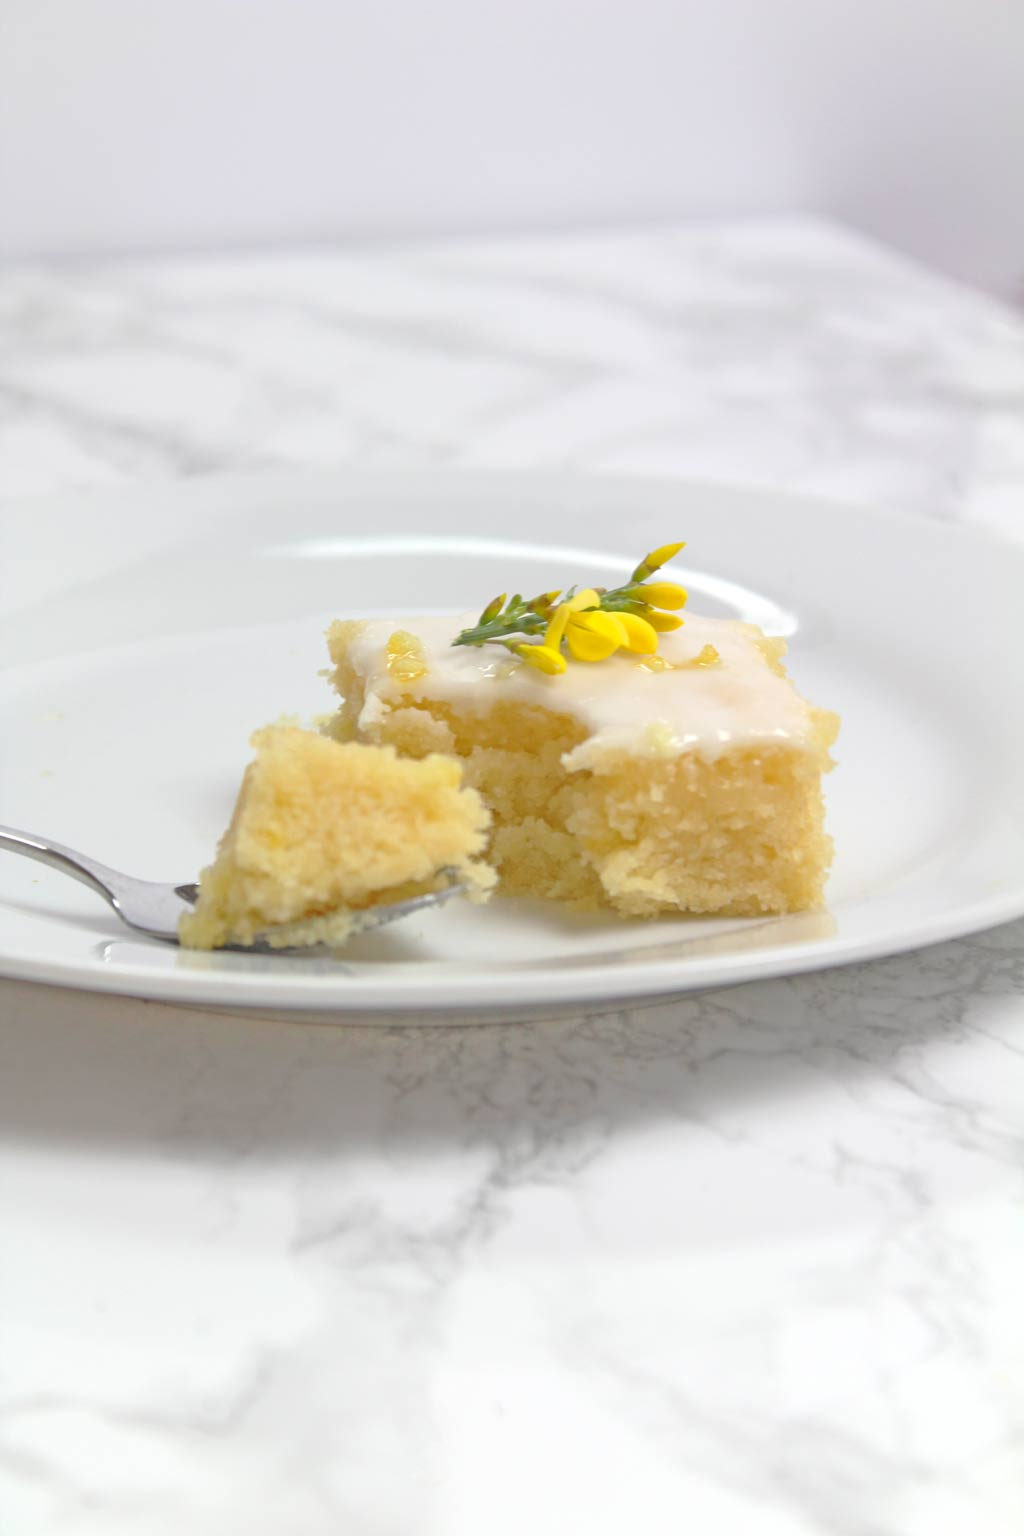 slice of lemon cake with a spoonful of cake beside it